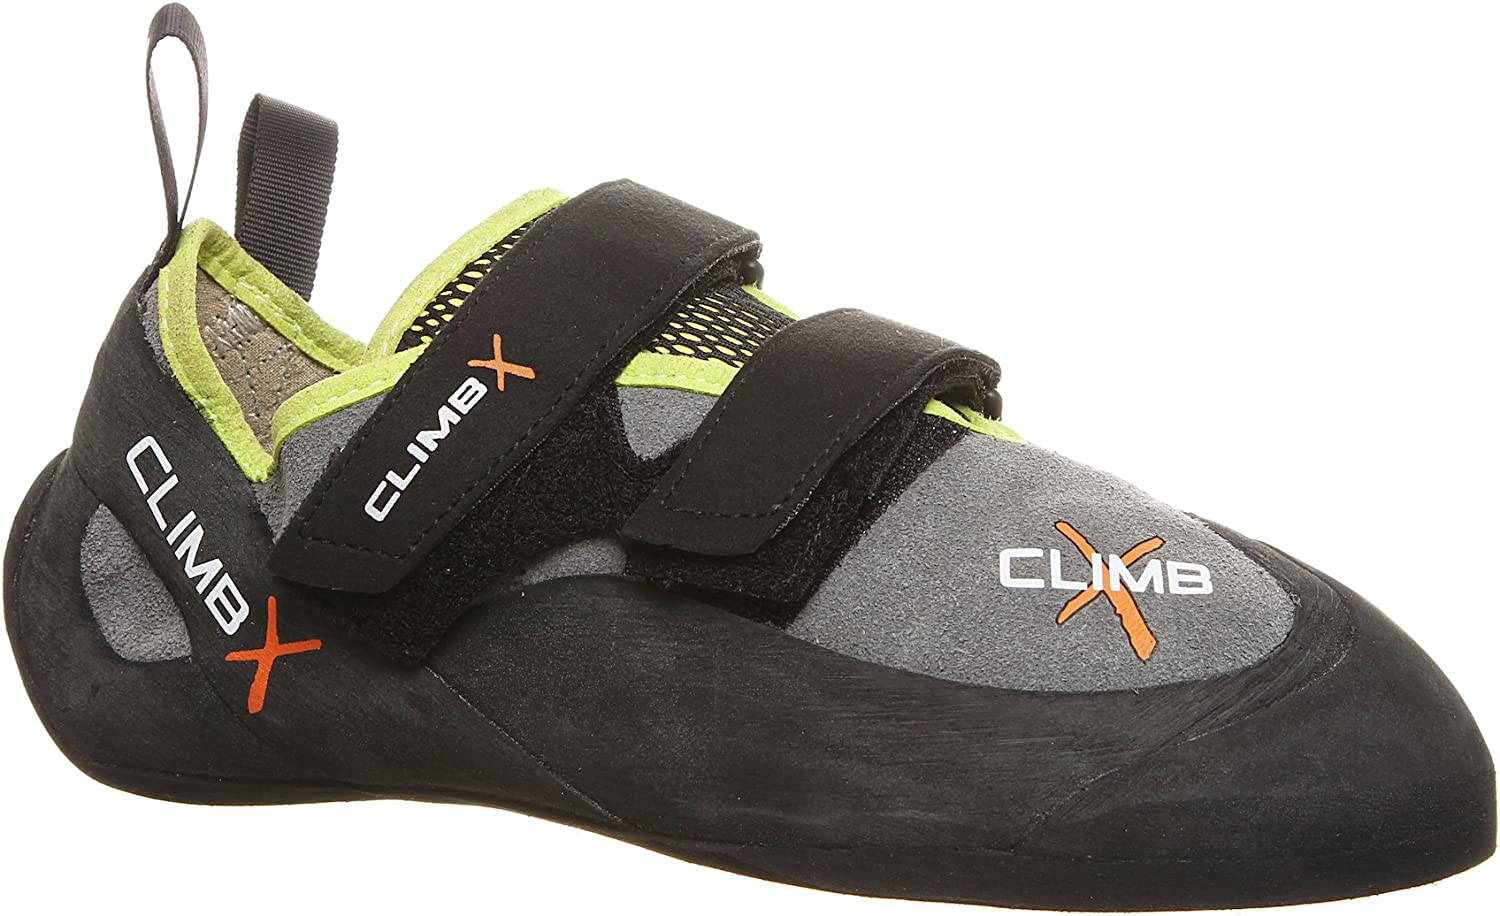 Climb X Rave Trainer Climbing shoes with Free Sickle M-16 Climbing Brush